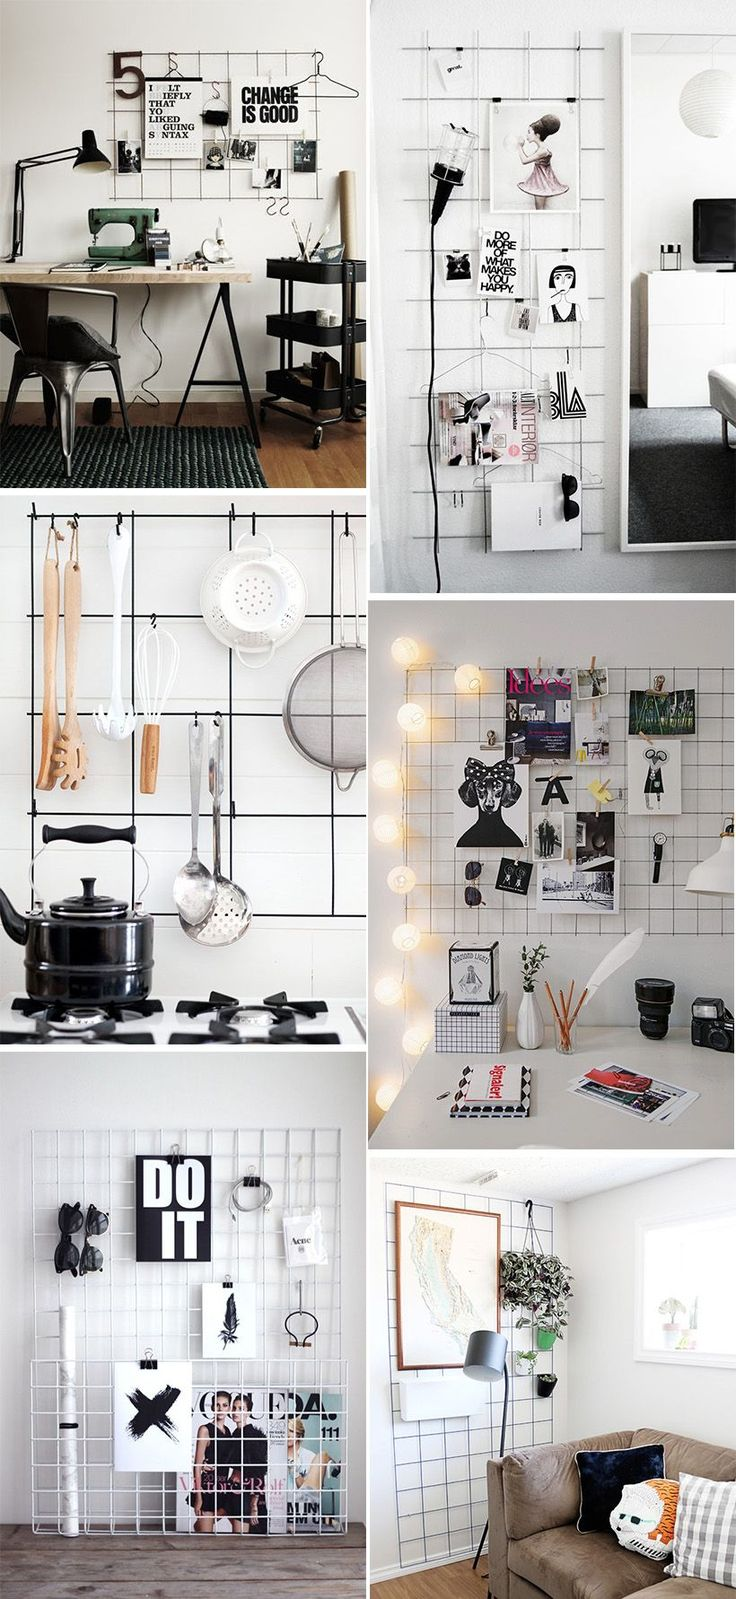 """These metal grid wall organizers are calling, """"Make me!"""" They all look so good in these photos, but a big part of that is the expert styling. If I make my own, will I be able to curate it so perfectly? I guess we'll find out, since I'm to the point where I've been casually trawling …"""